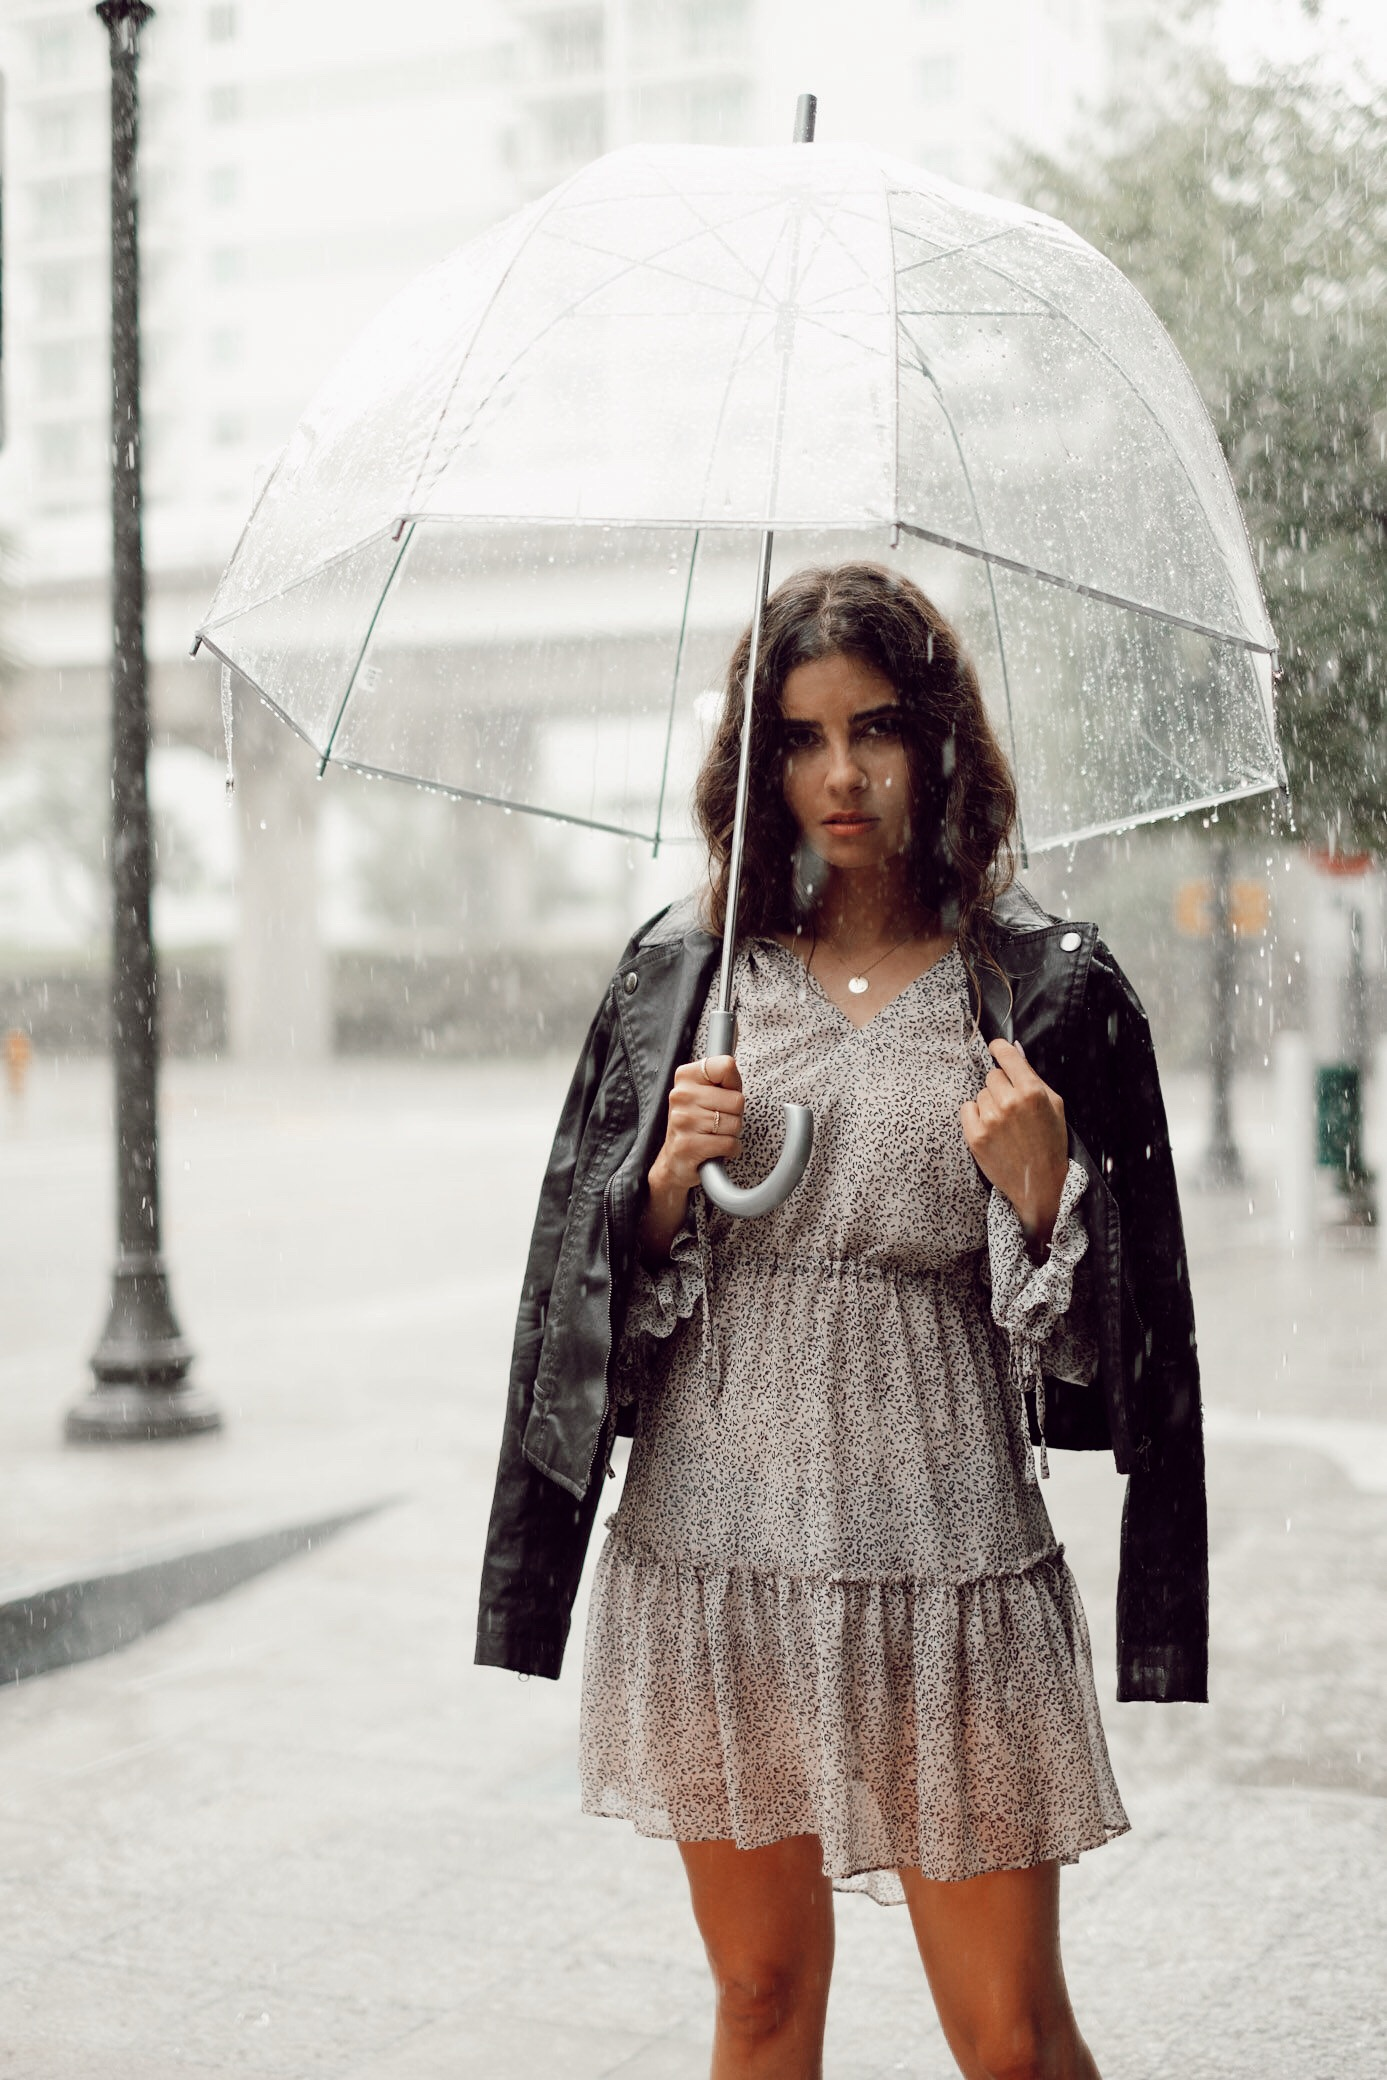 How To Stay Stylish In Rainy Weather - The secret to staying stylish in a rainy weather is to invest in…